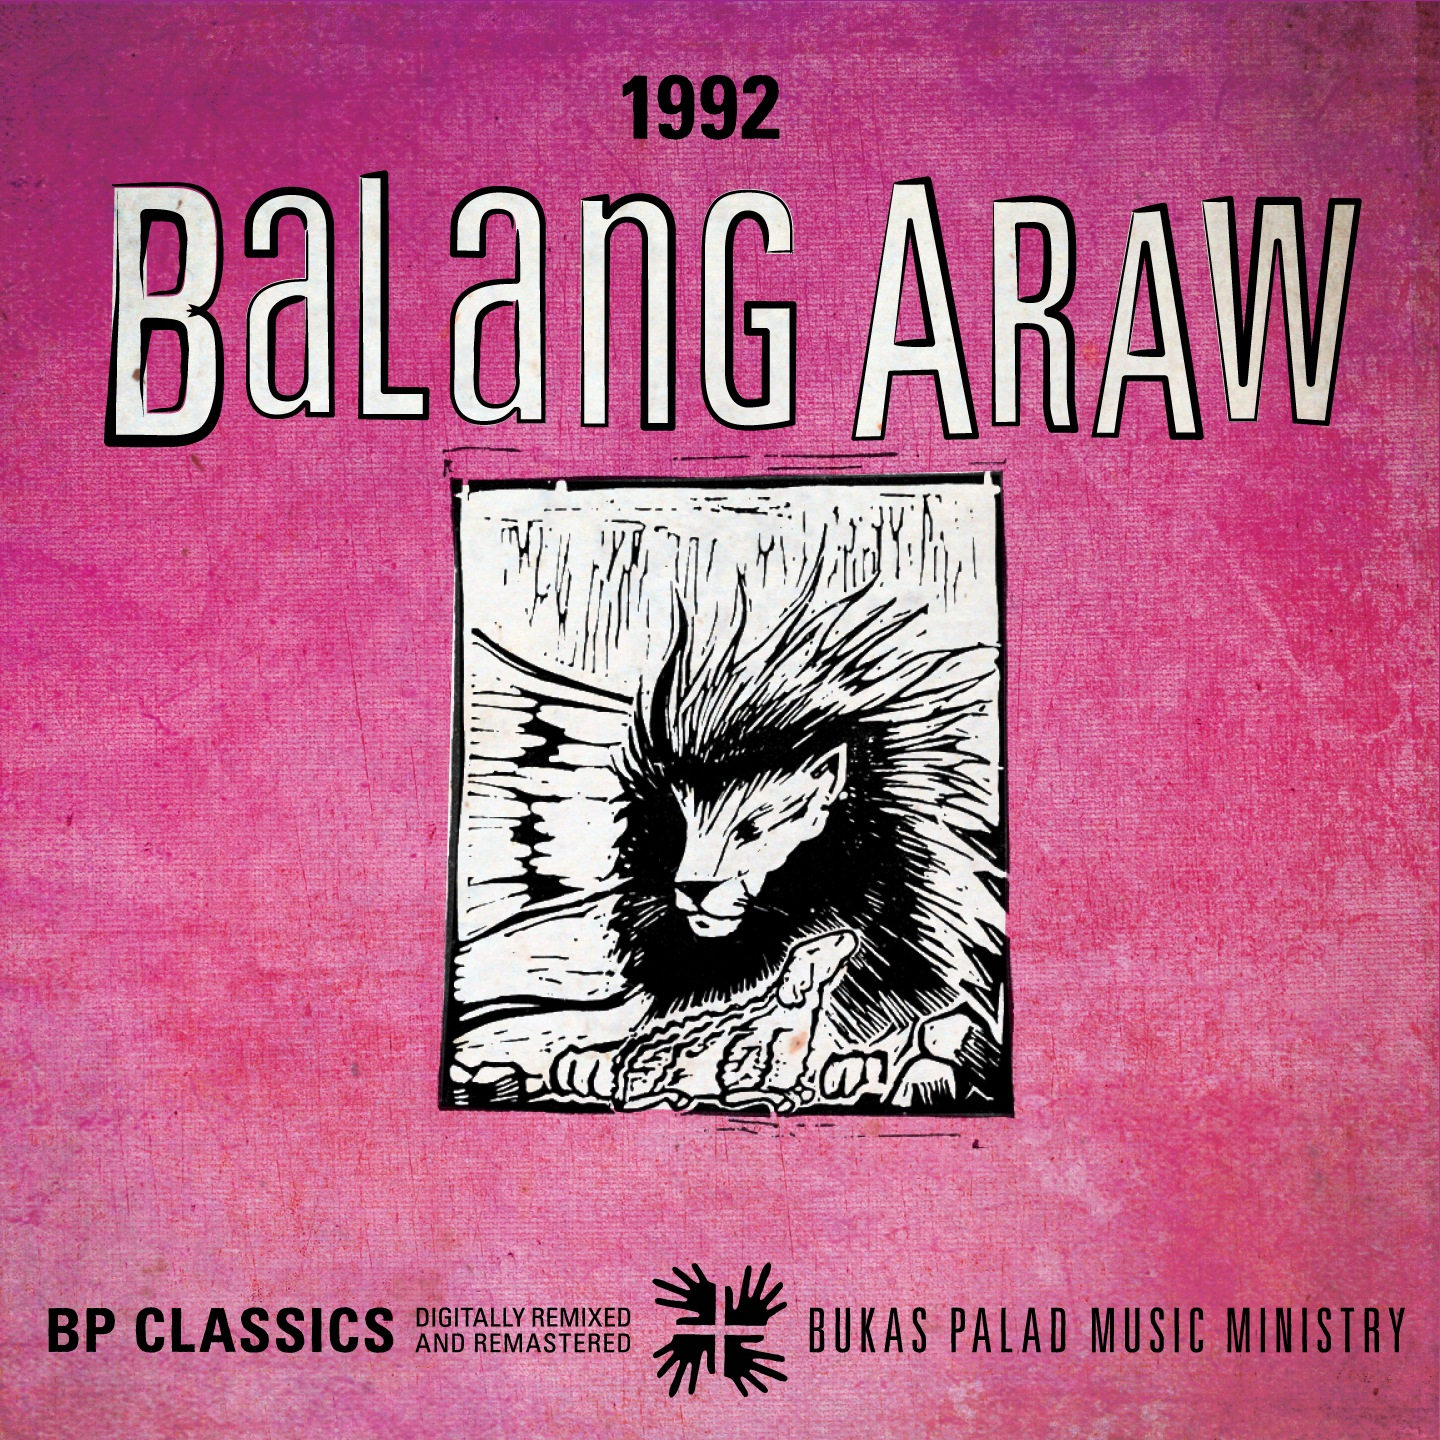 "Bukas Palad Music Ministry's ""Balang Araw (1992)"" hits Spotify and digital music stores this June 28 and 29!"